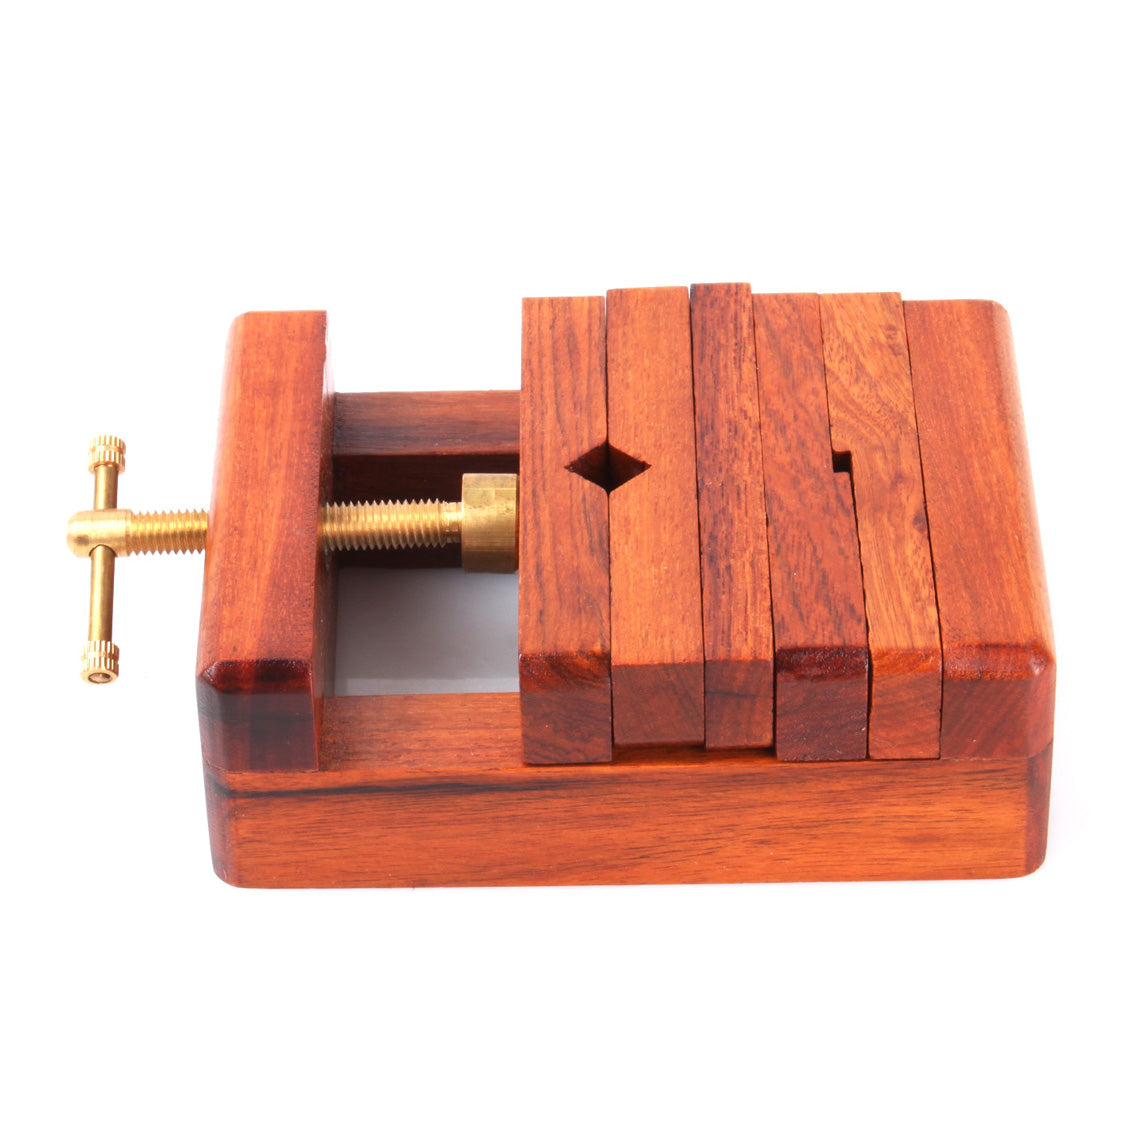 this rectangular wooden chinese seal carving stand is super handy for you to learn or practice chinese seal / chop carving